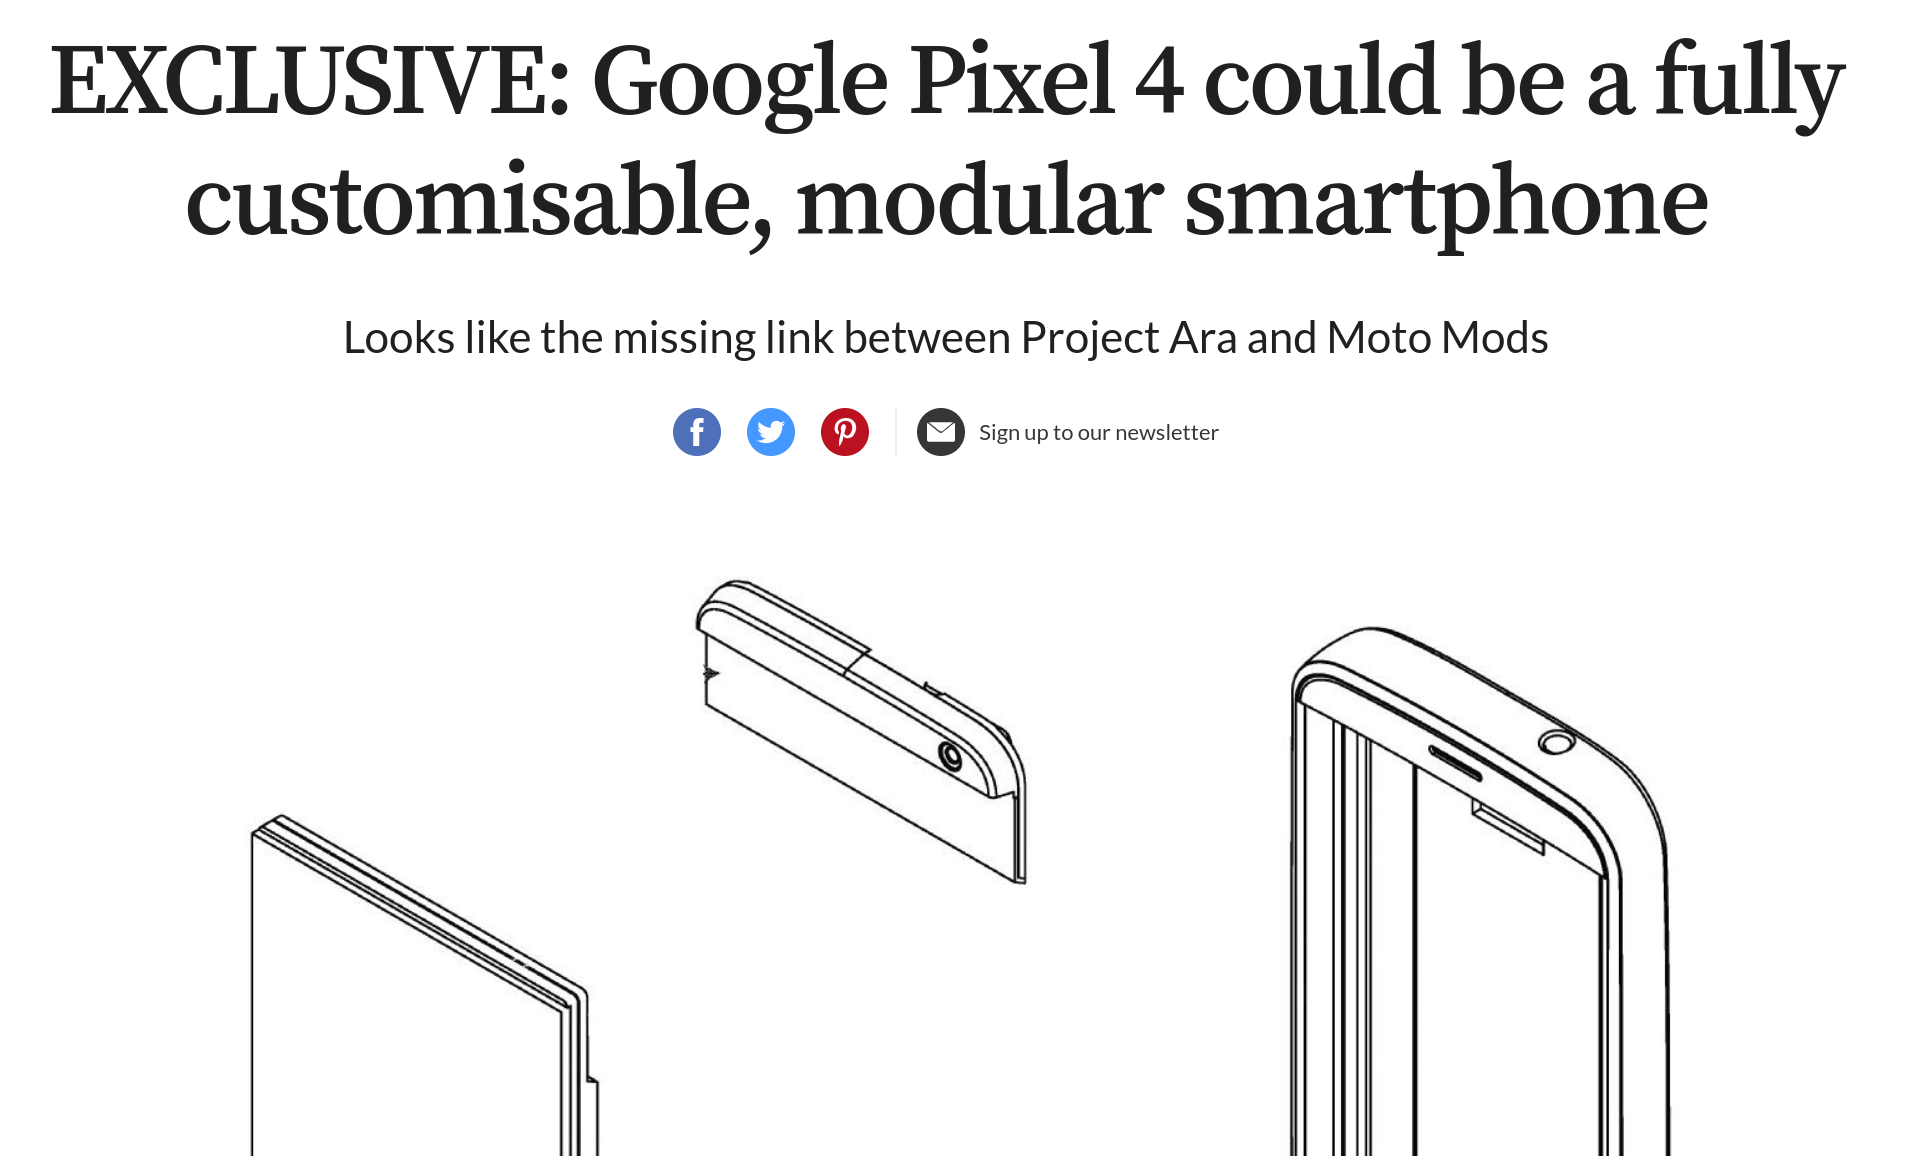 New report details Google's 2019 product roadmap, including the Pixel 4